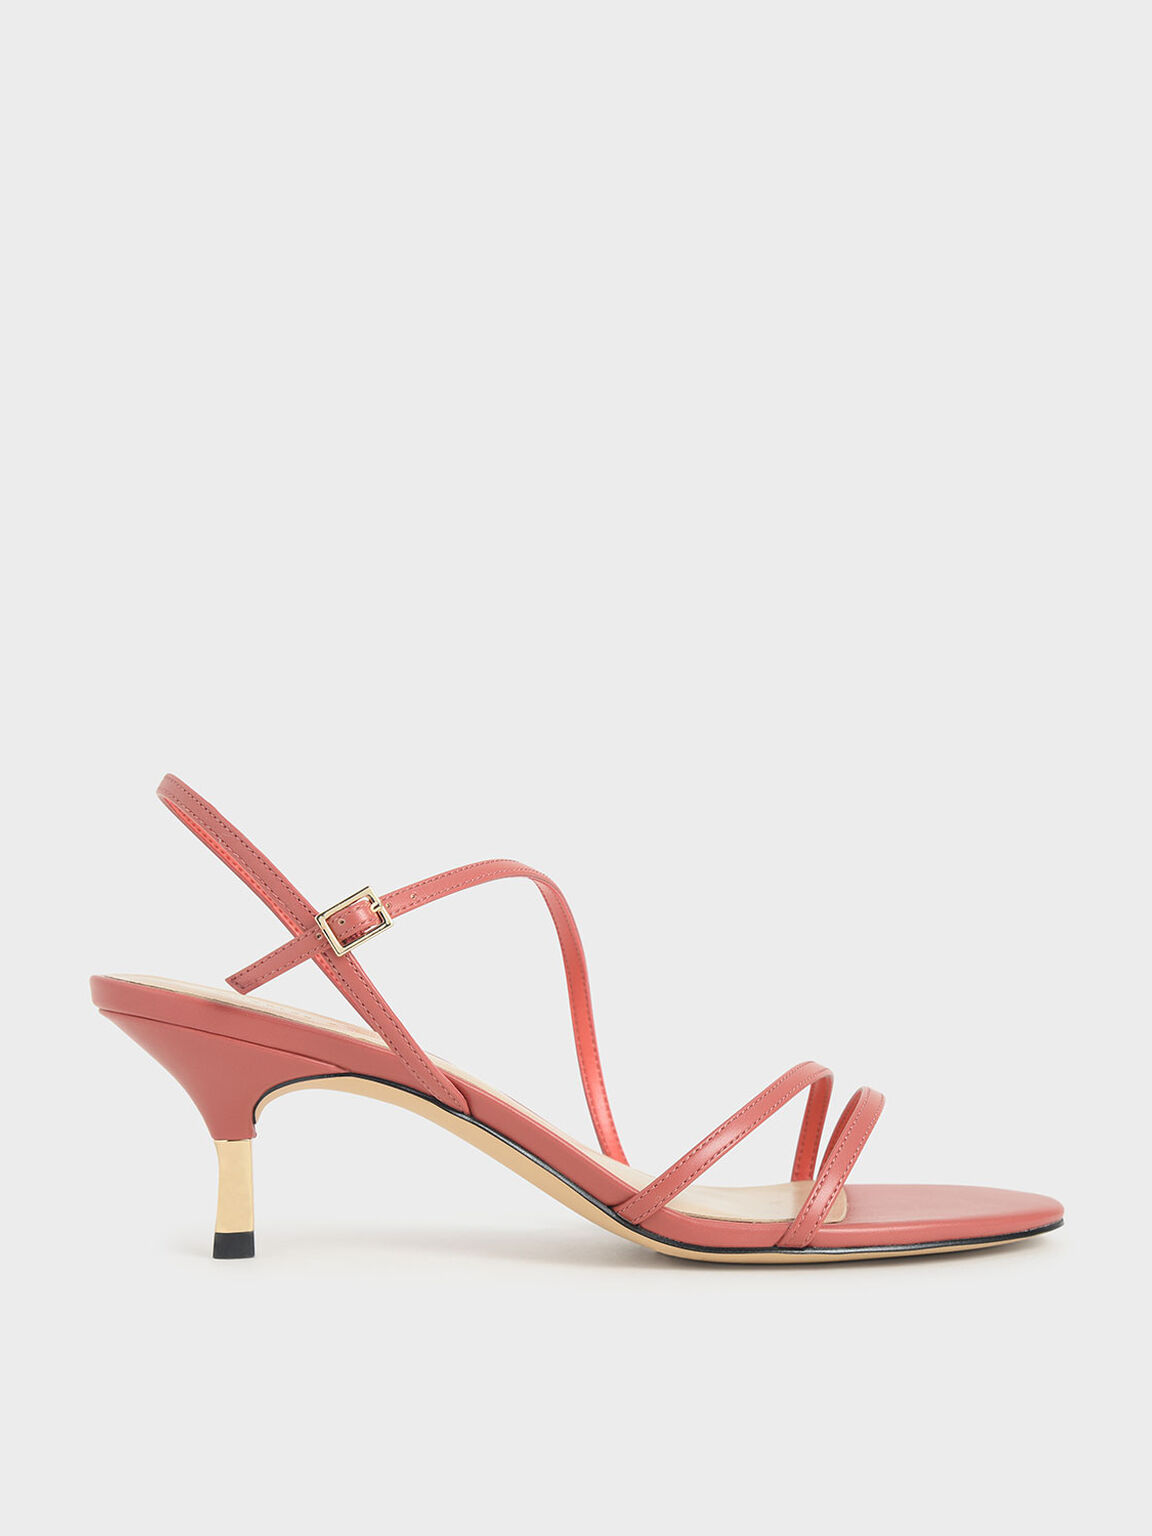 Strappy Metallic Heel Sandals, Coral Pink, hi-res